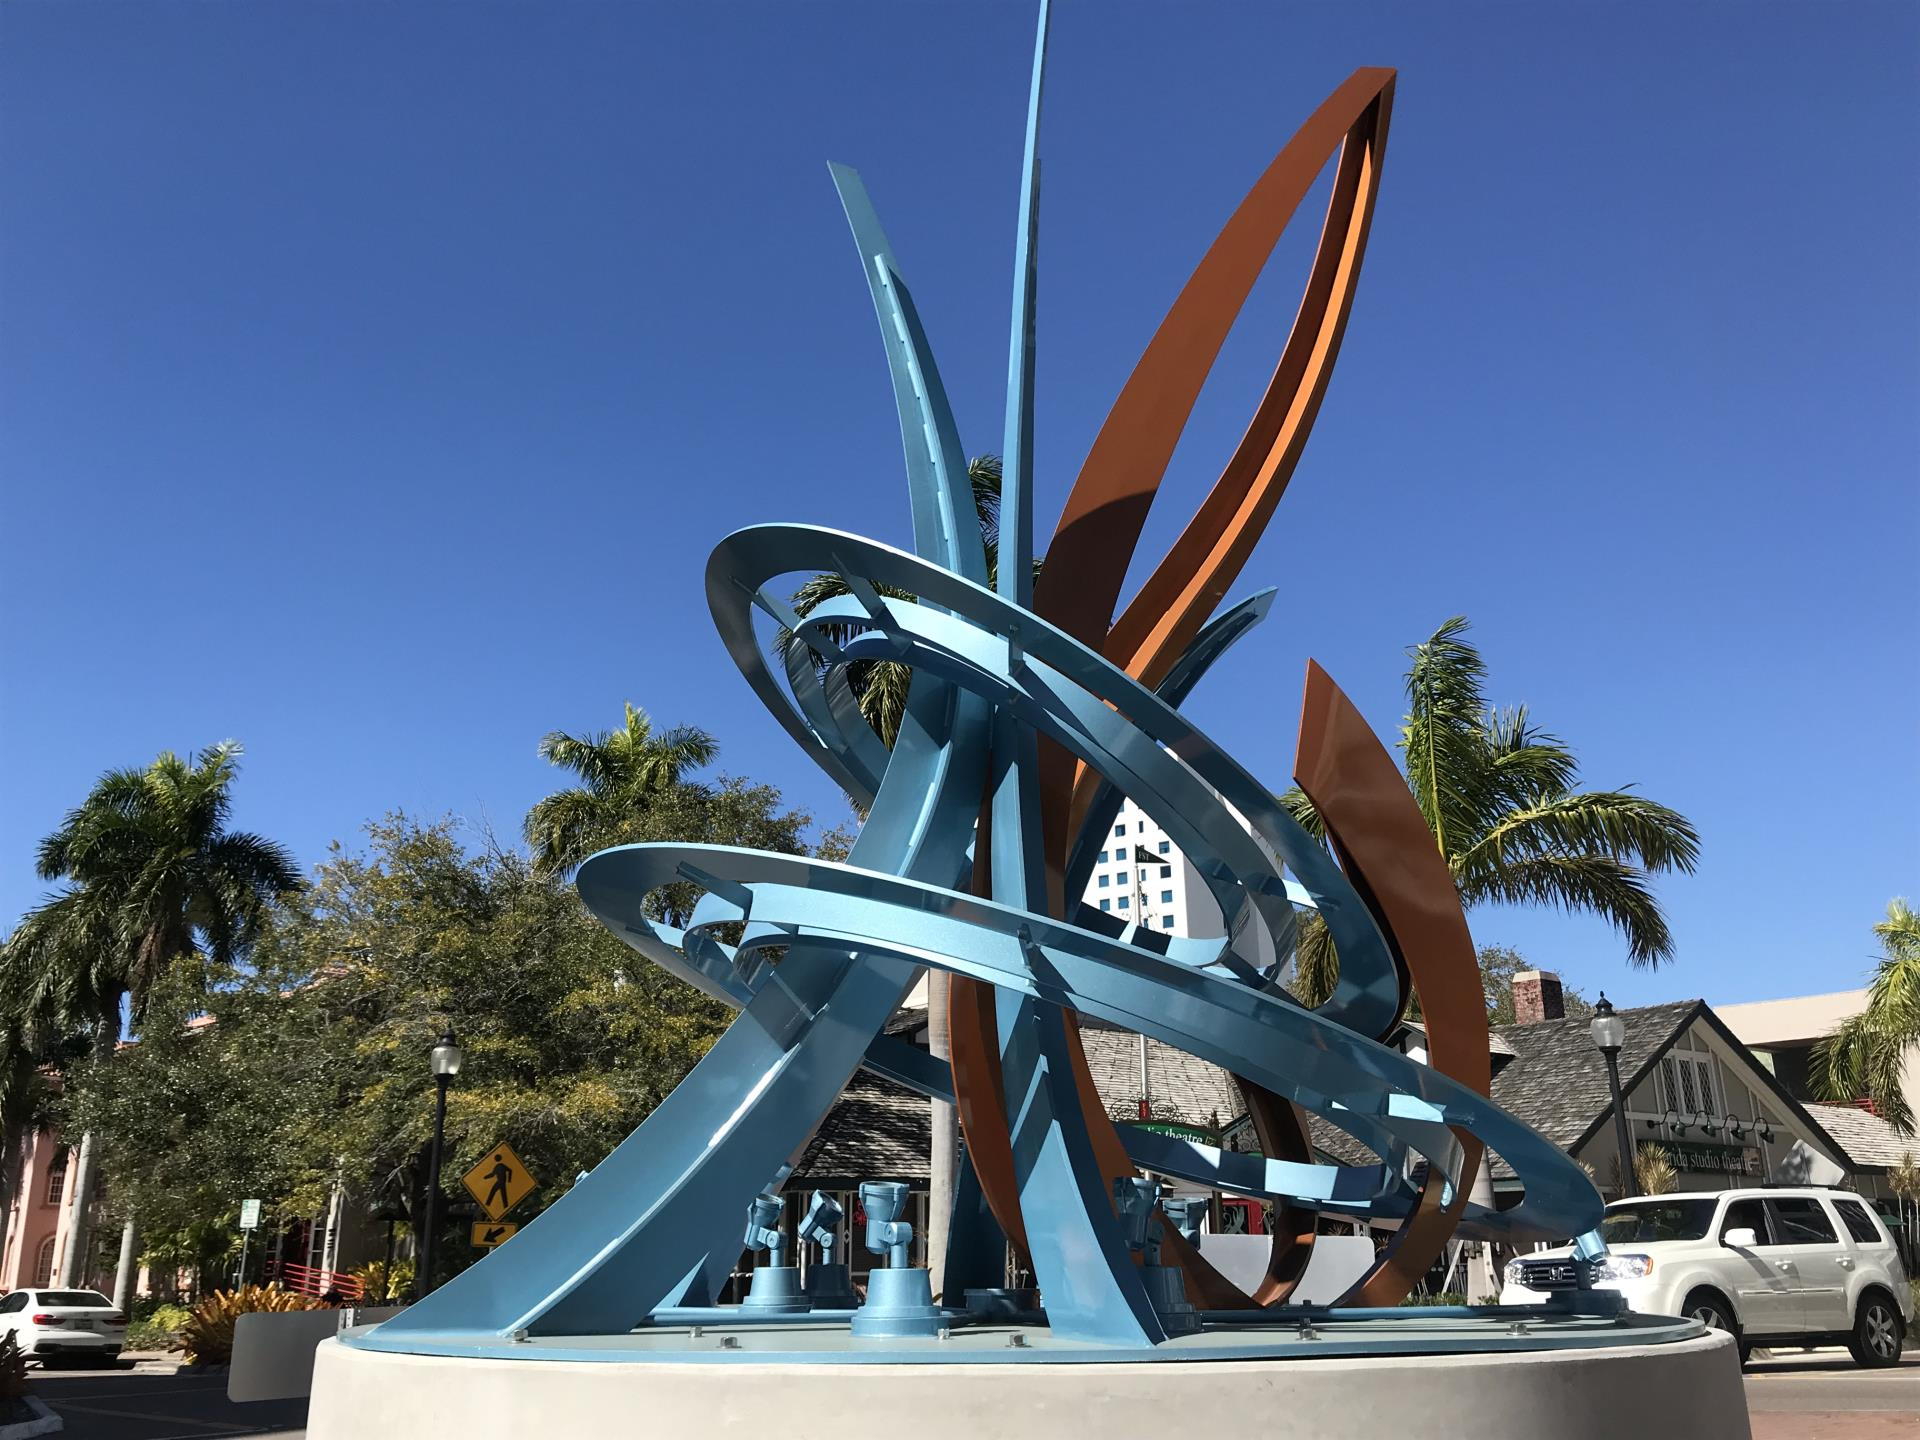 Jumping Fish sculpture at the Palm/Cocoanut avenue roundabout